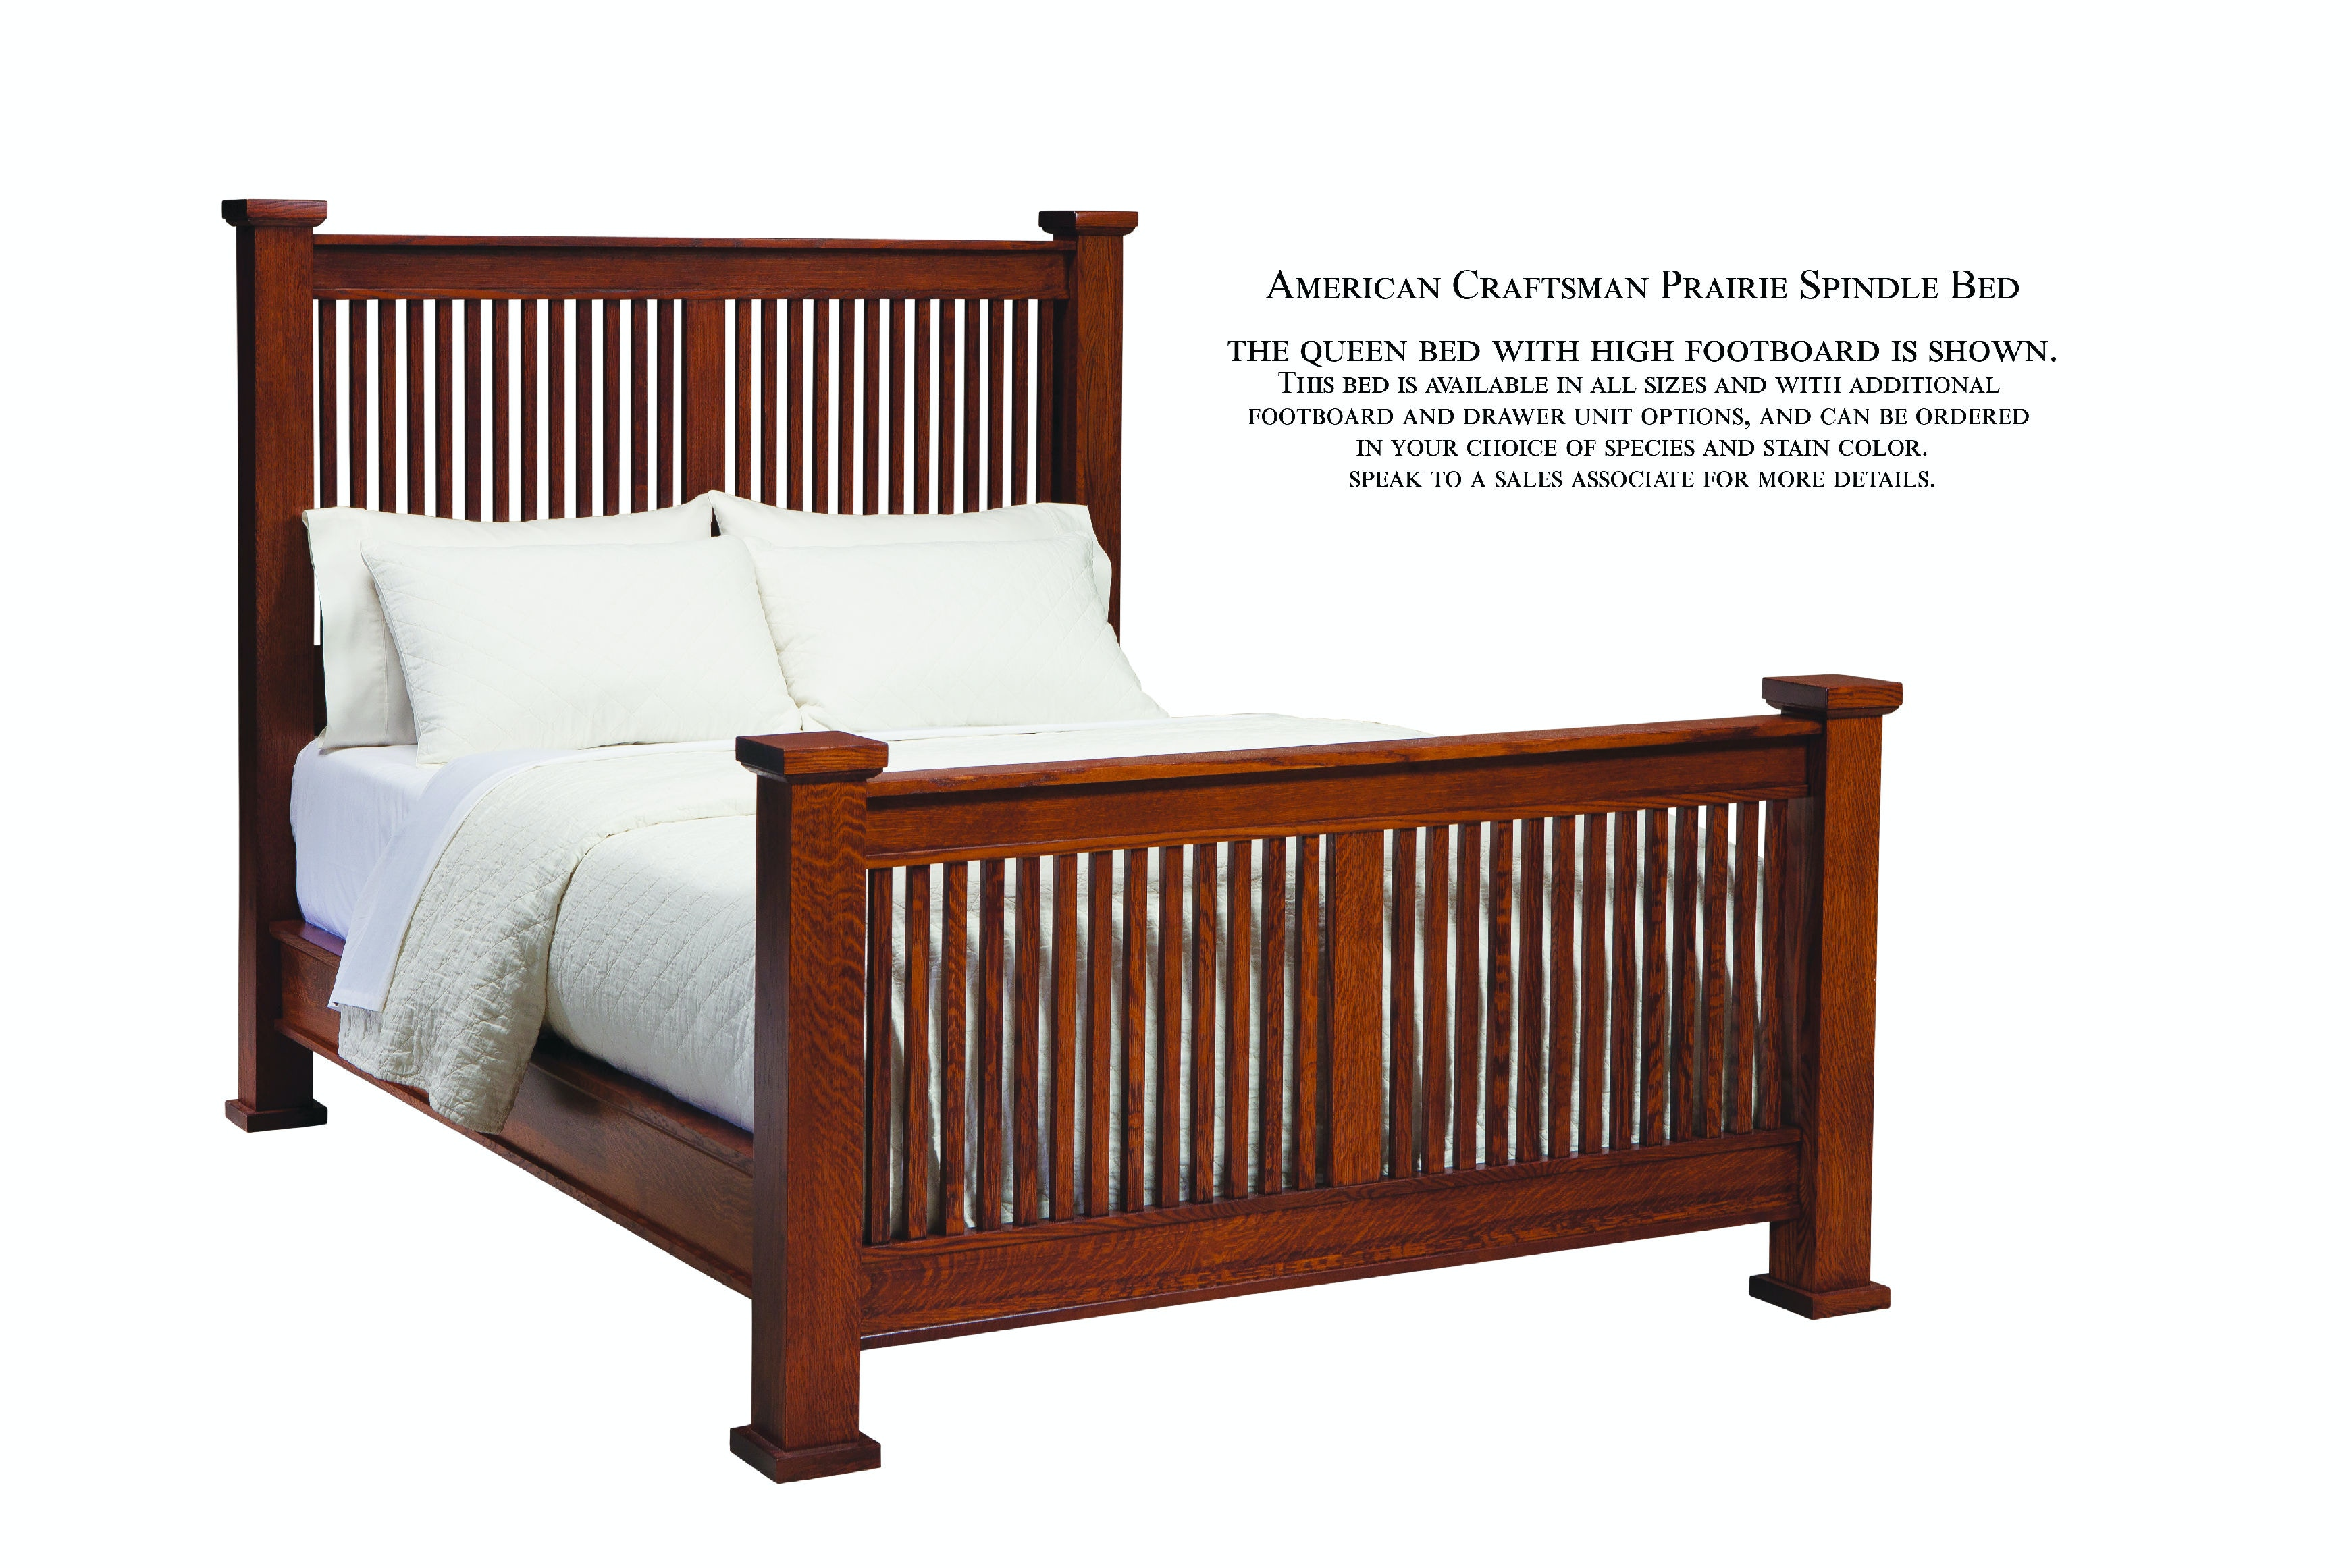 Palettes By Winesburg Prairie Spindle Bed With Rail Footboard American  Craftsman Prairie Spindle Bed With Rails